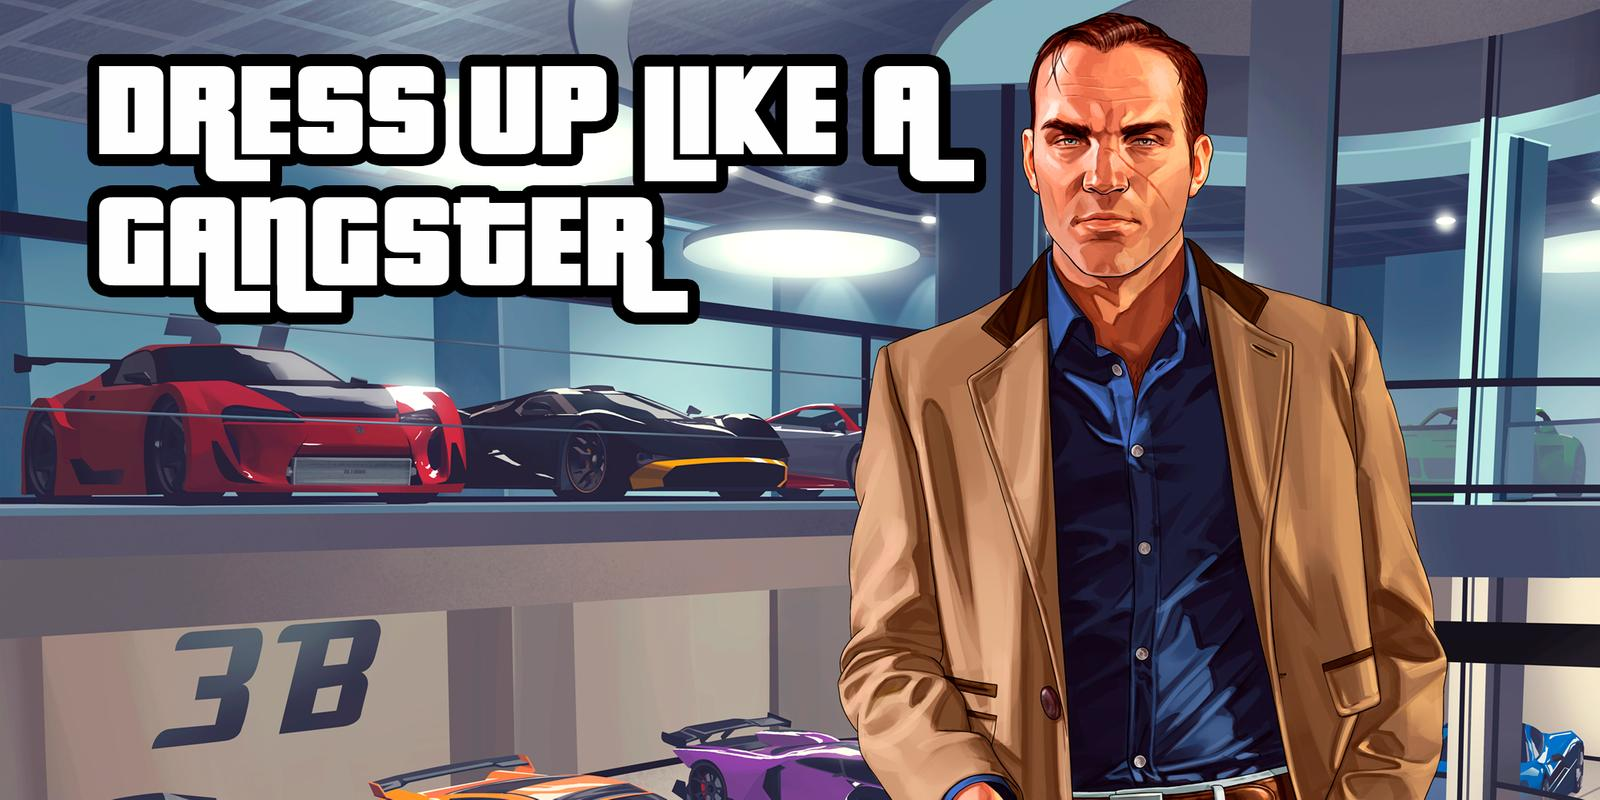 Juegos Gta V Trucos For Android Apk Download